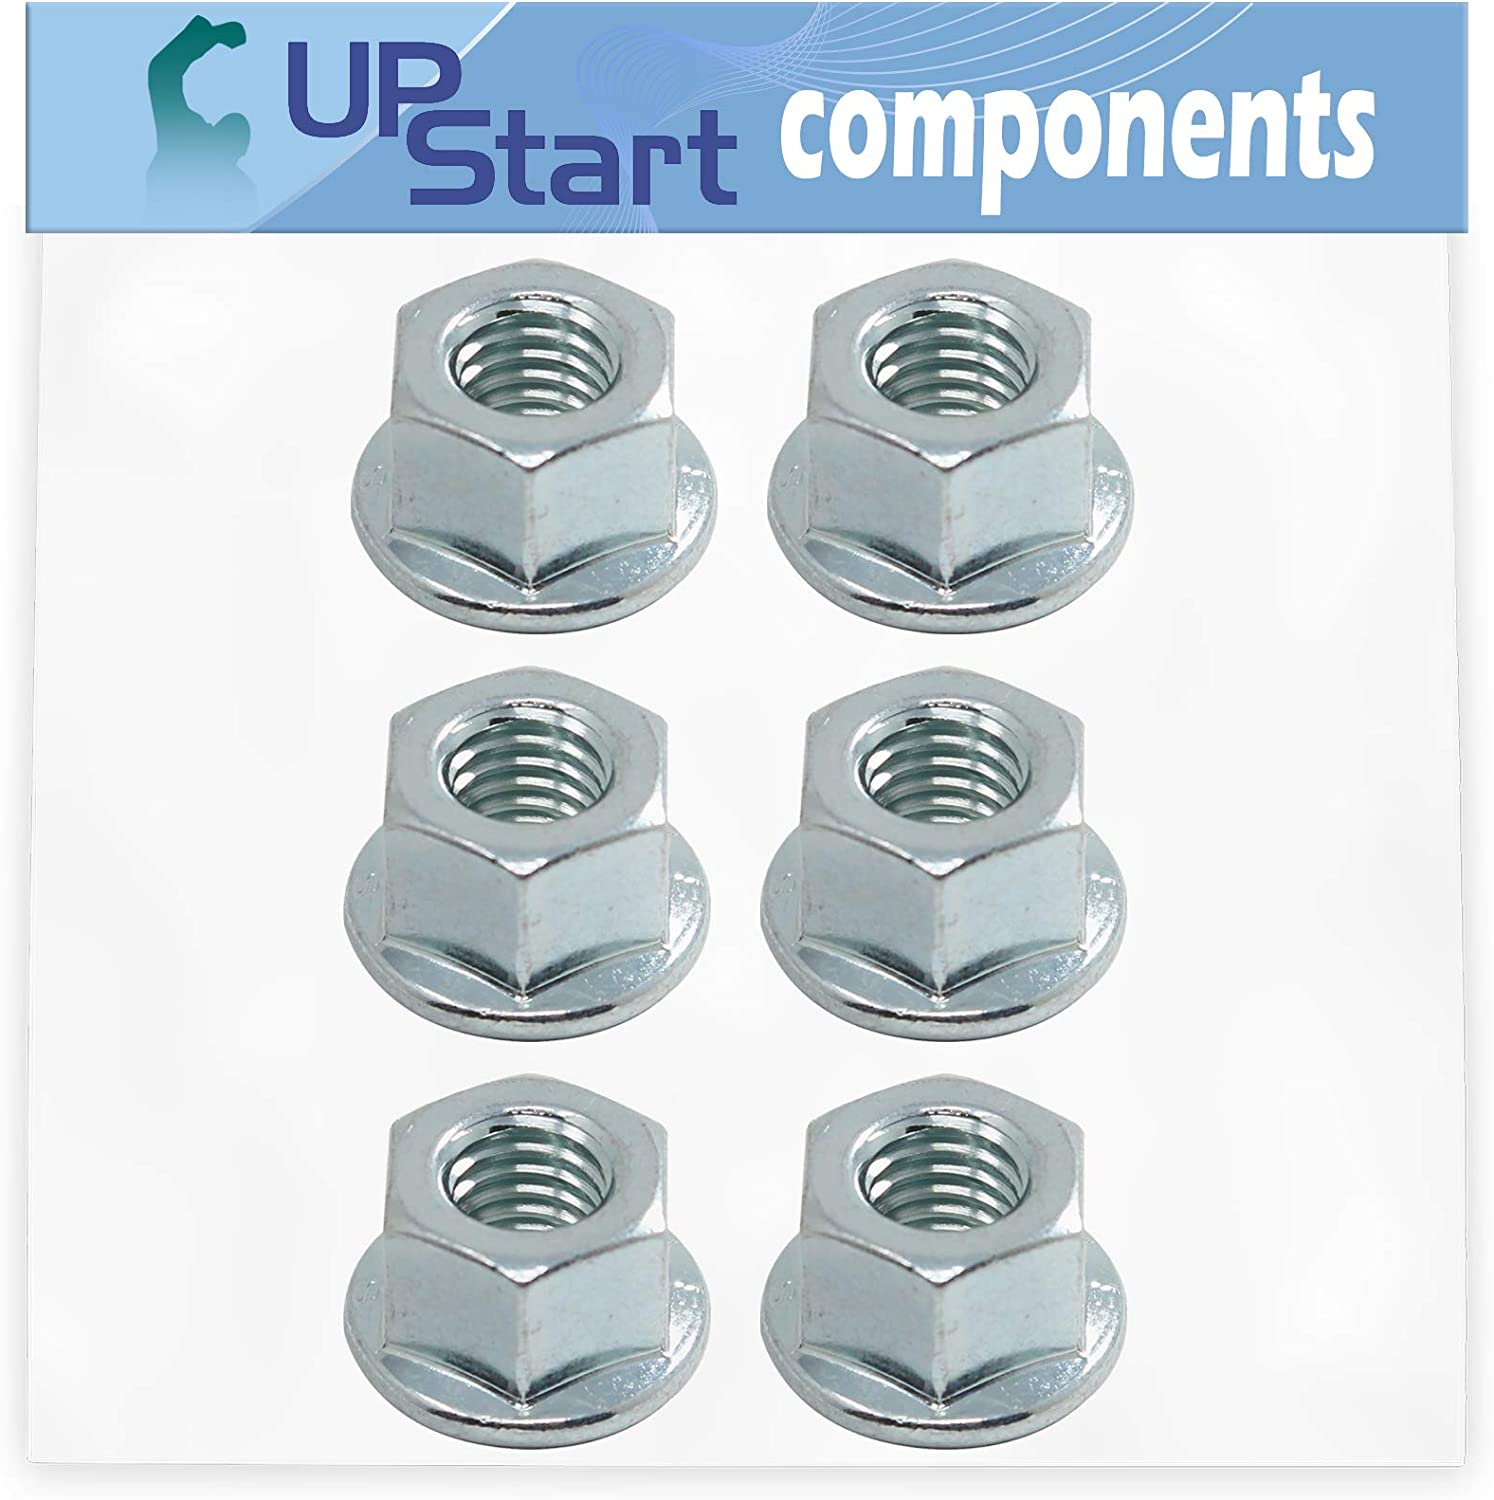 UpStart Components 6-Pack Classic 503220001 Flange Cheap Nut S for Replacement